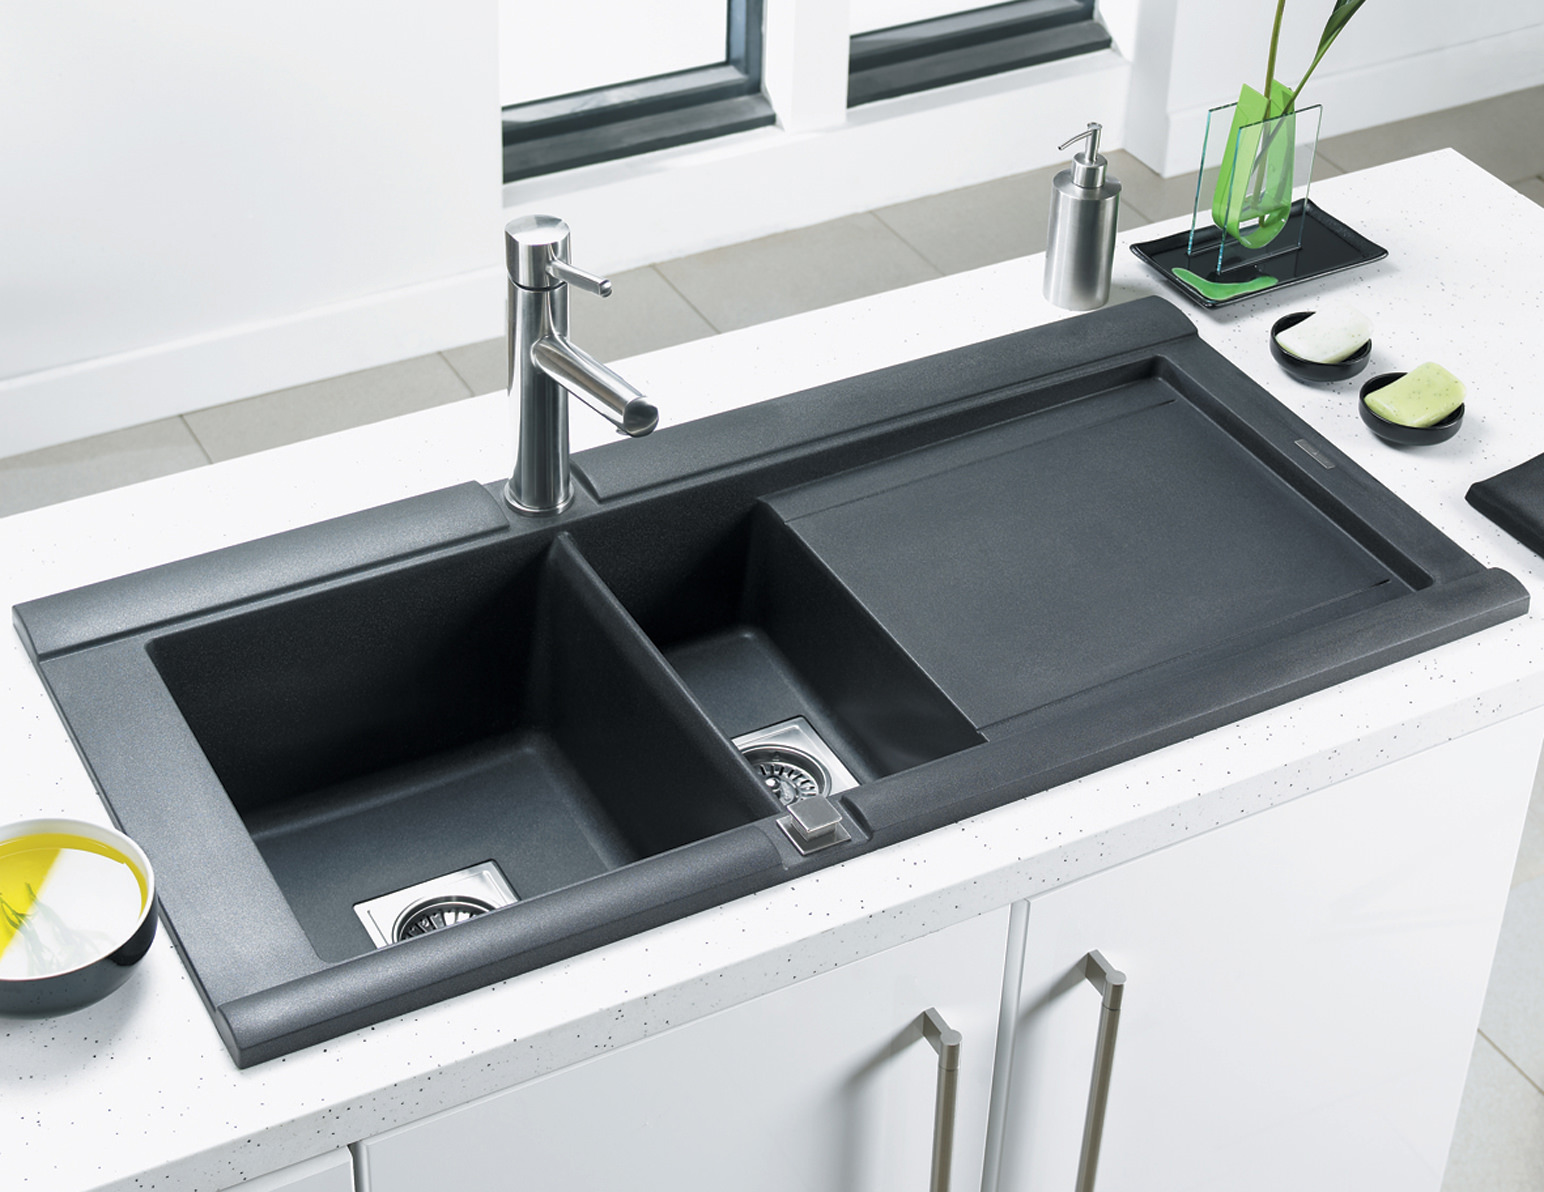 Astracast Geo Comp ROK Metallic Inset Sink And Accessories - 1.5B